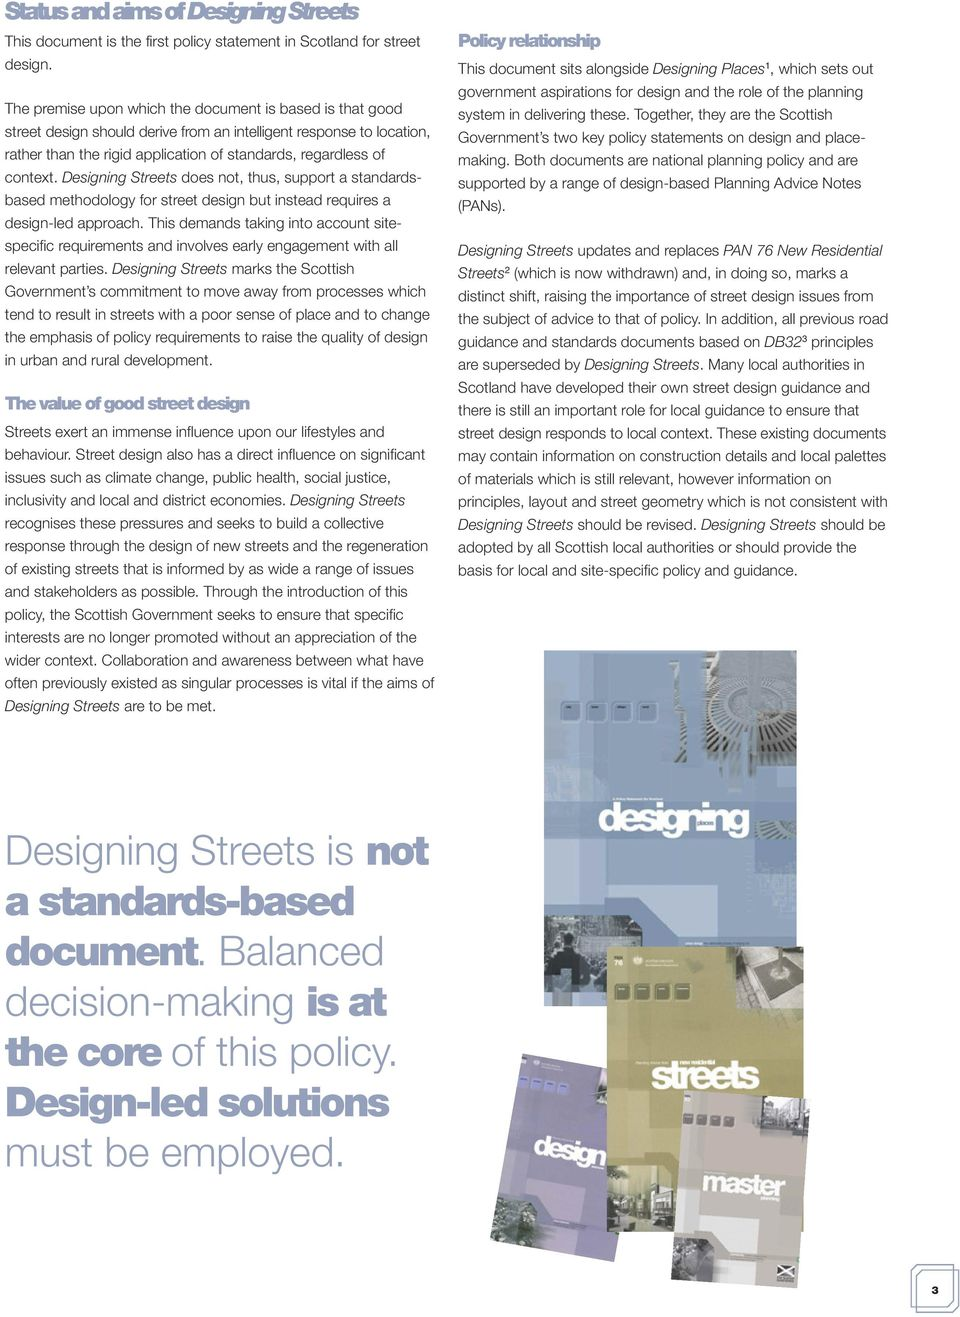 Designing Streets does not, thus, support a standardsbased methodology for street design but instead requires a design-led approach.